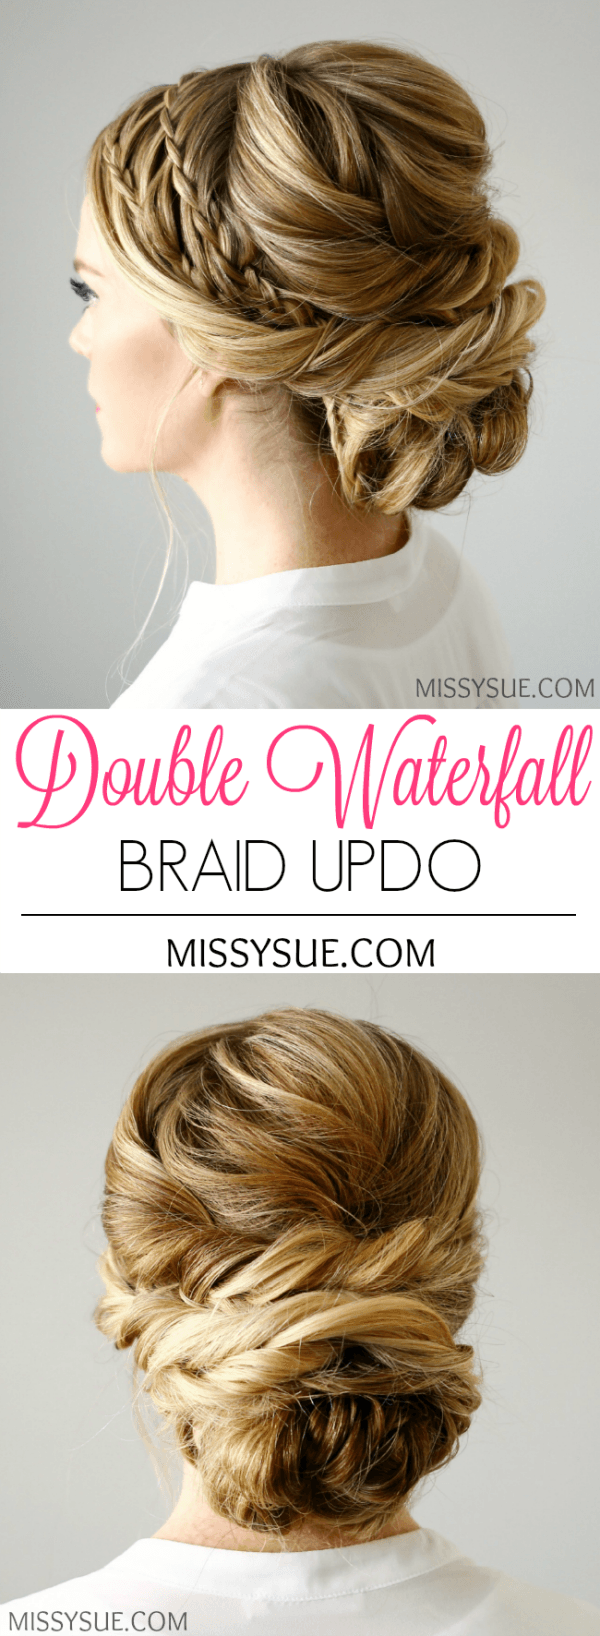 Double Waterfall Braids Updo | tranças | Pinterest | Waterfall braid ...